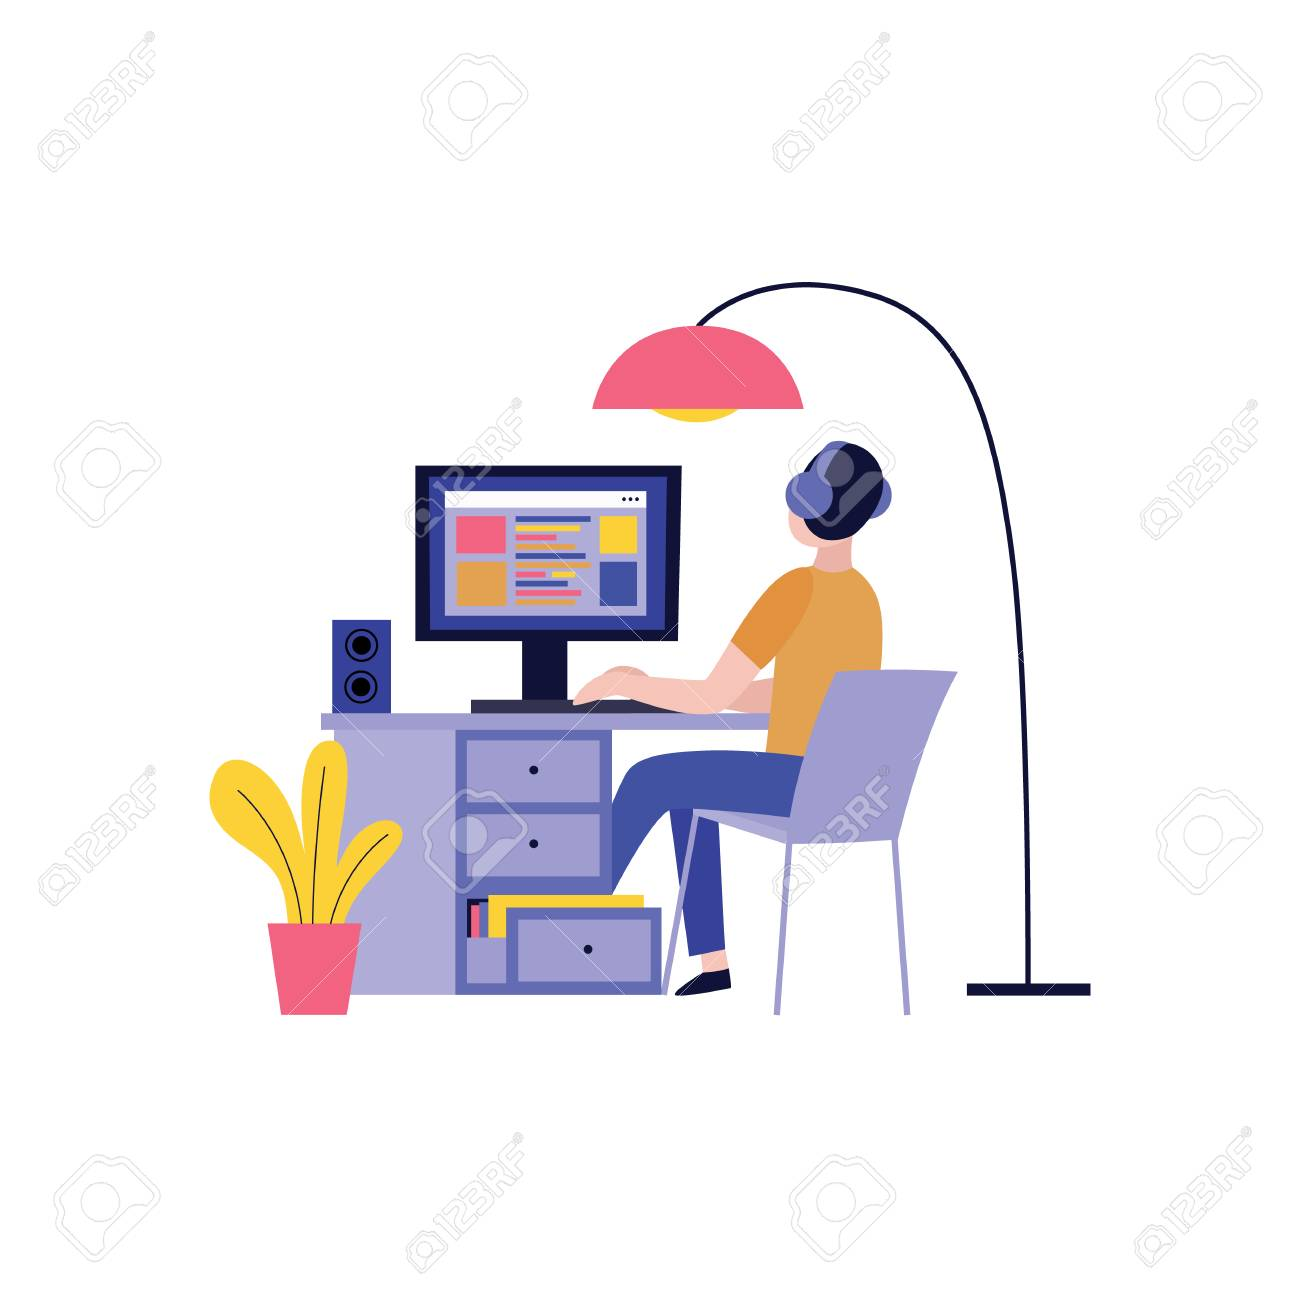 Back view of man in headphones working with computer and creating website in flat style isolated on white background - vector illustration of blogger, writer or freelancer concept design. - 124654920